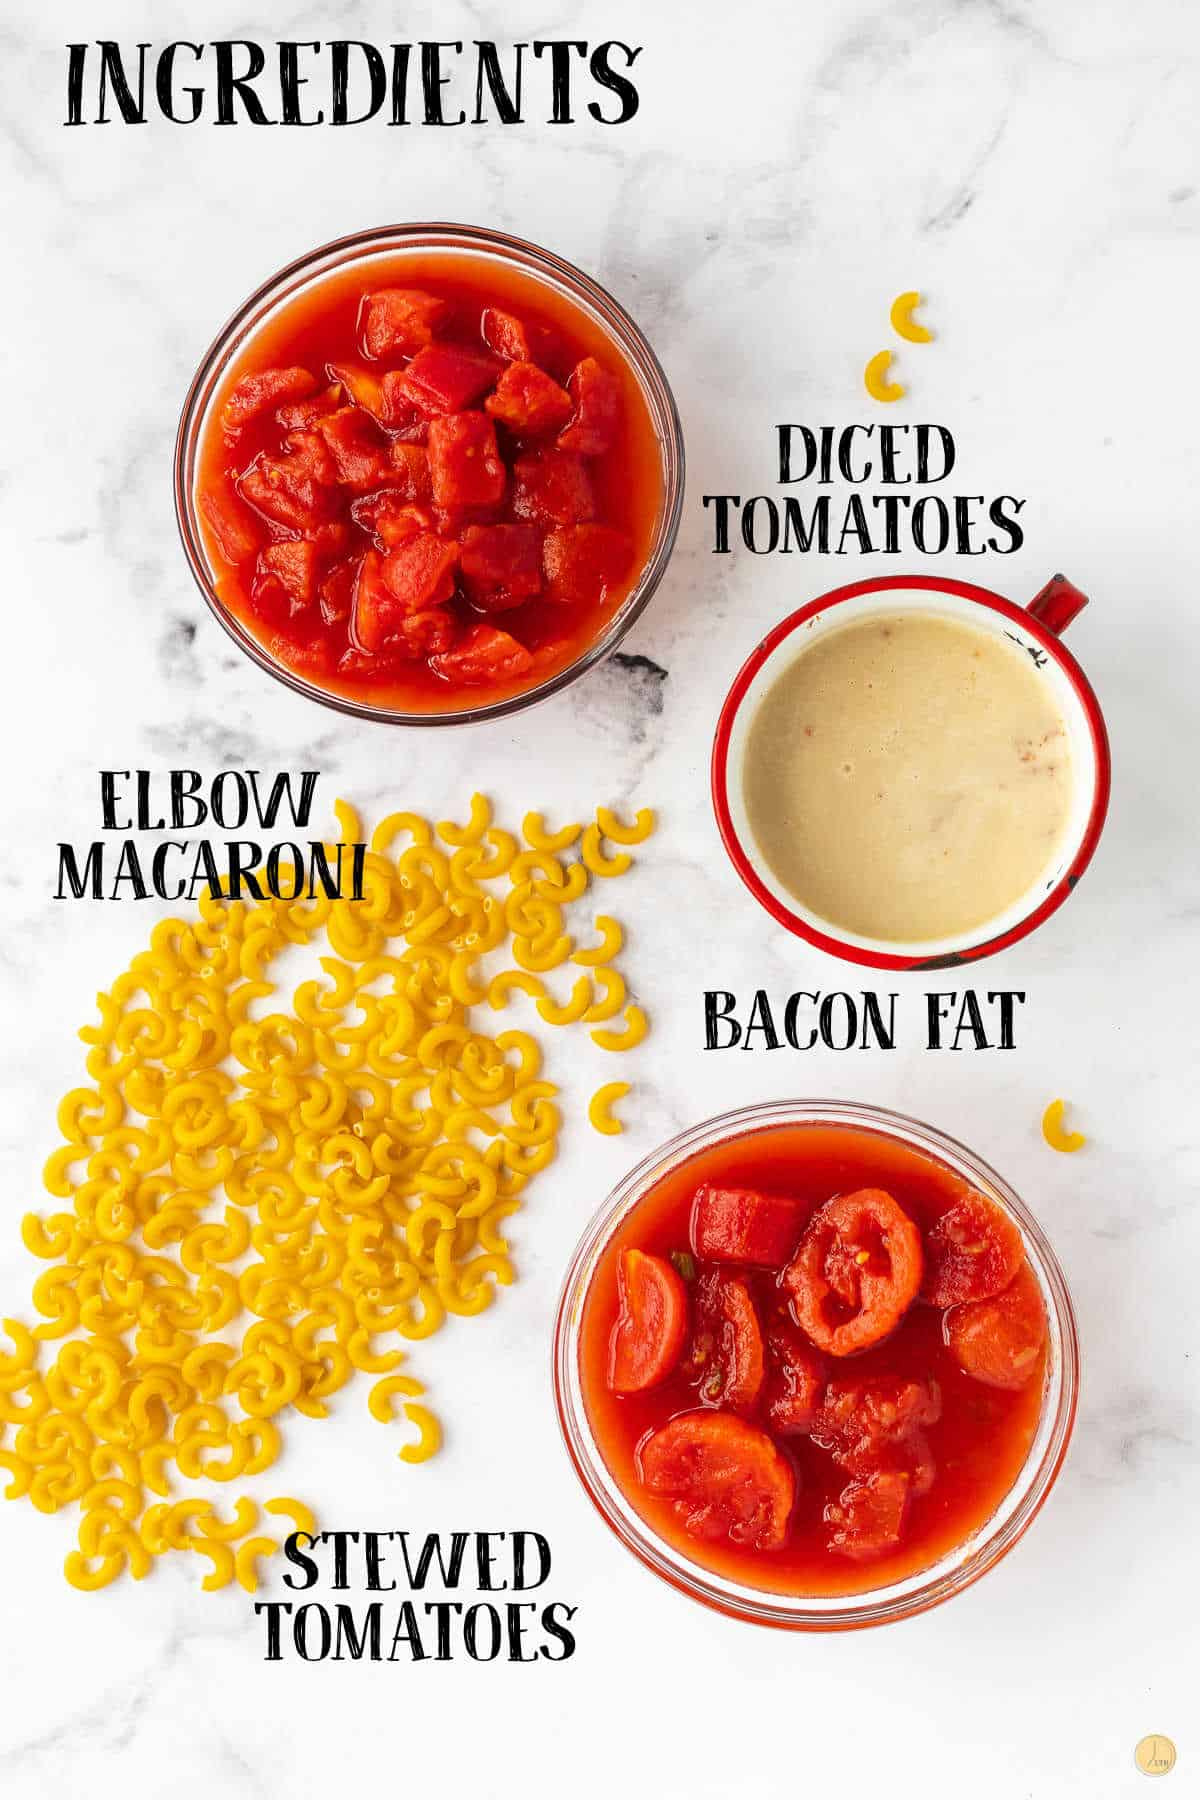 labeled picture of tomatoes and macaroni